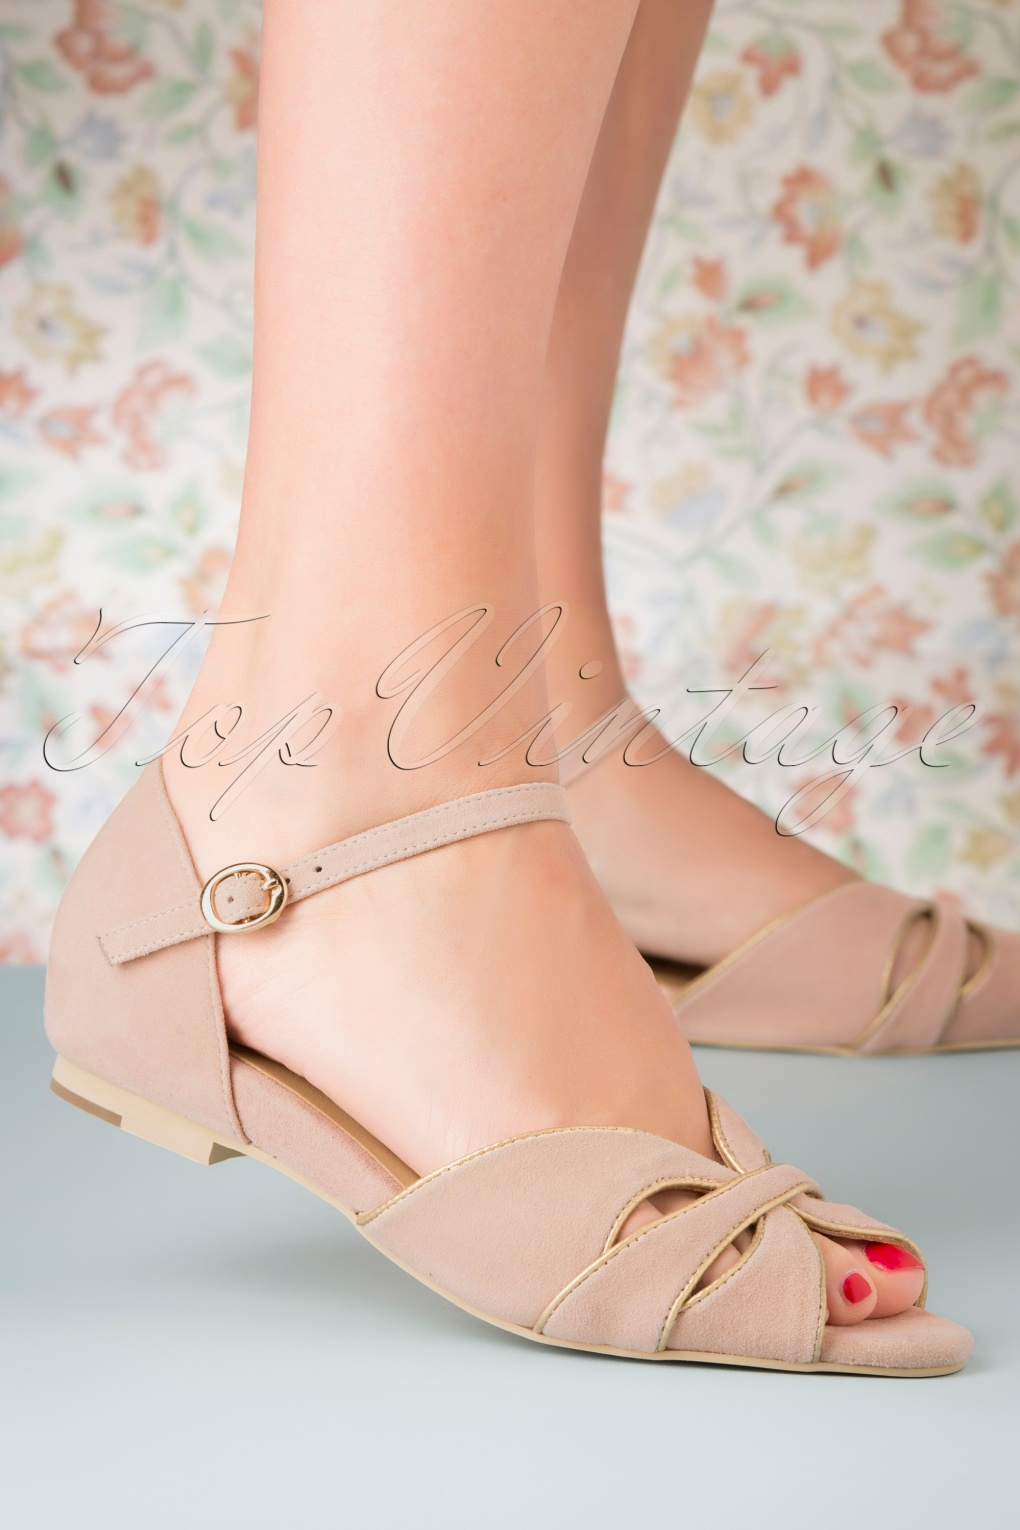 1950s Style Shoes | Heels, Flats, Saddle Shoes 50s Athina Suede Peeptoe Flats in Blush £108.49 AT vintagedancer.com